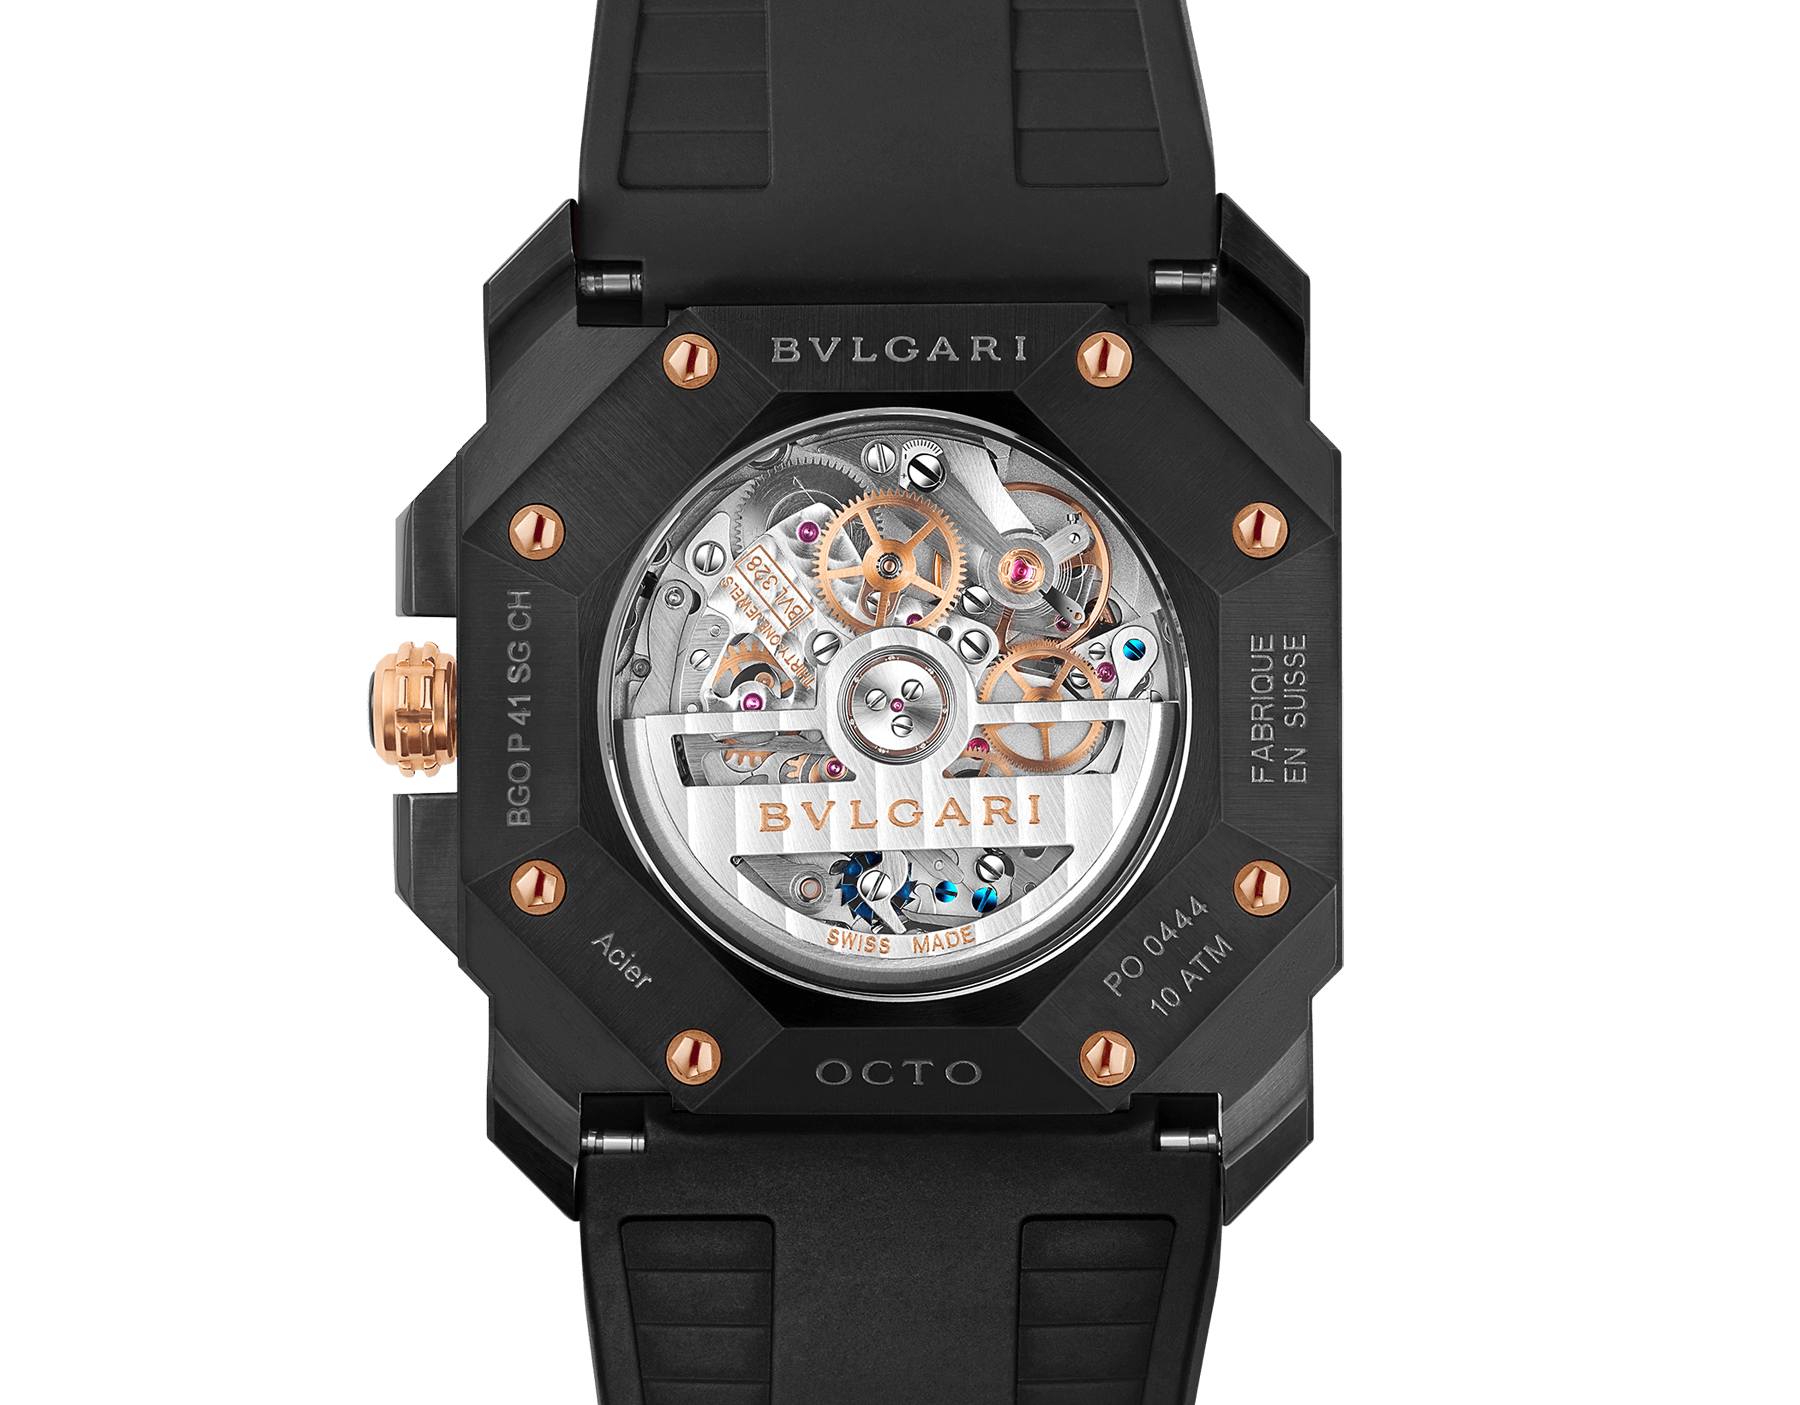 Octo watch with mechanical manufacture movement, high-frequency chronograph, automatic winding and date, stainless steel case treated with black Diamond Like Carbon, 18 kt rose gold bezel, black lacquered dial and black rubber bracelet. 102488 image 4